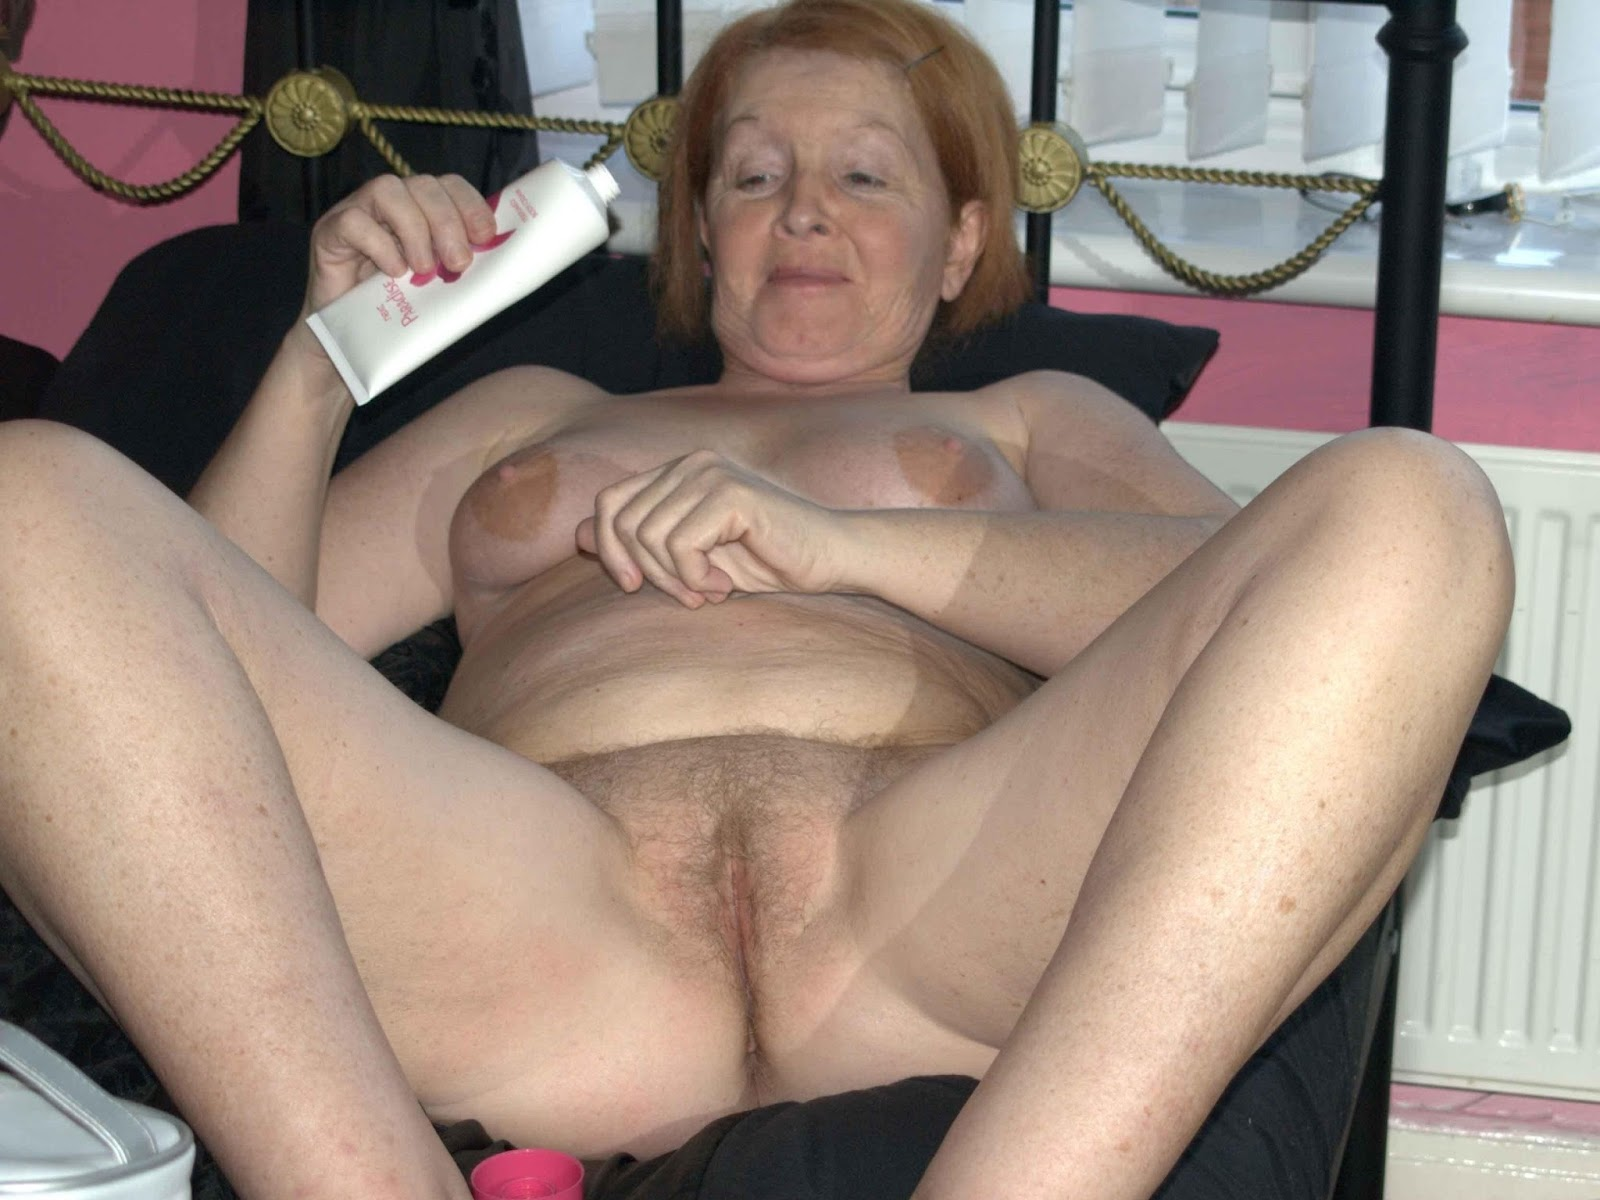 Older Mature Women, Fat Mature Ladies, Naked Mature Women